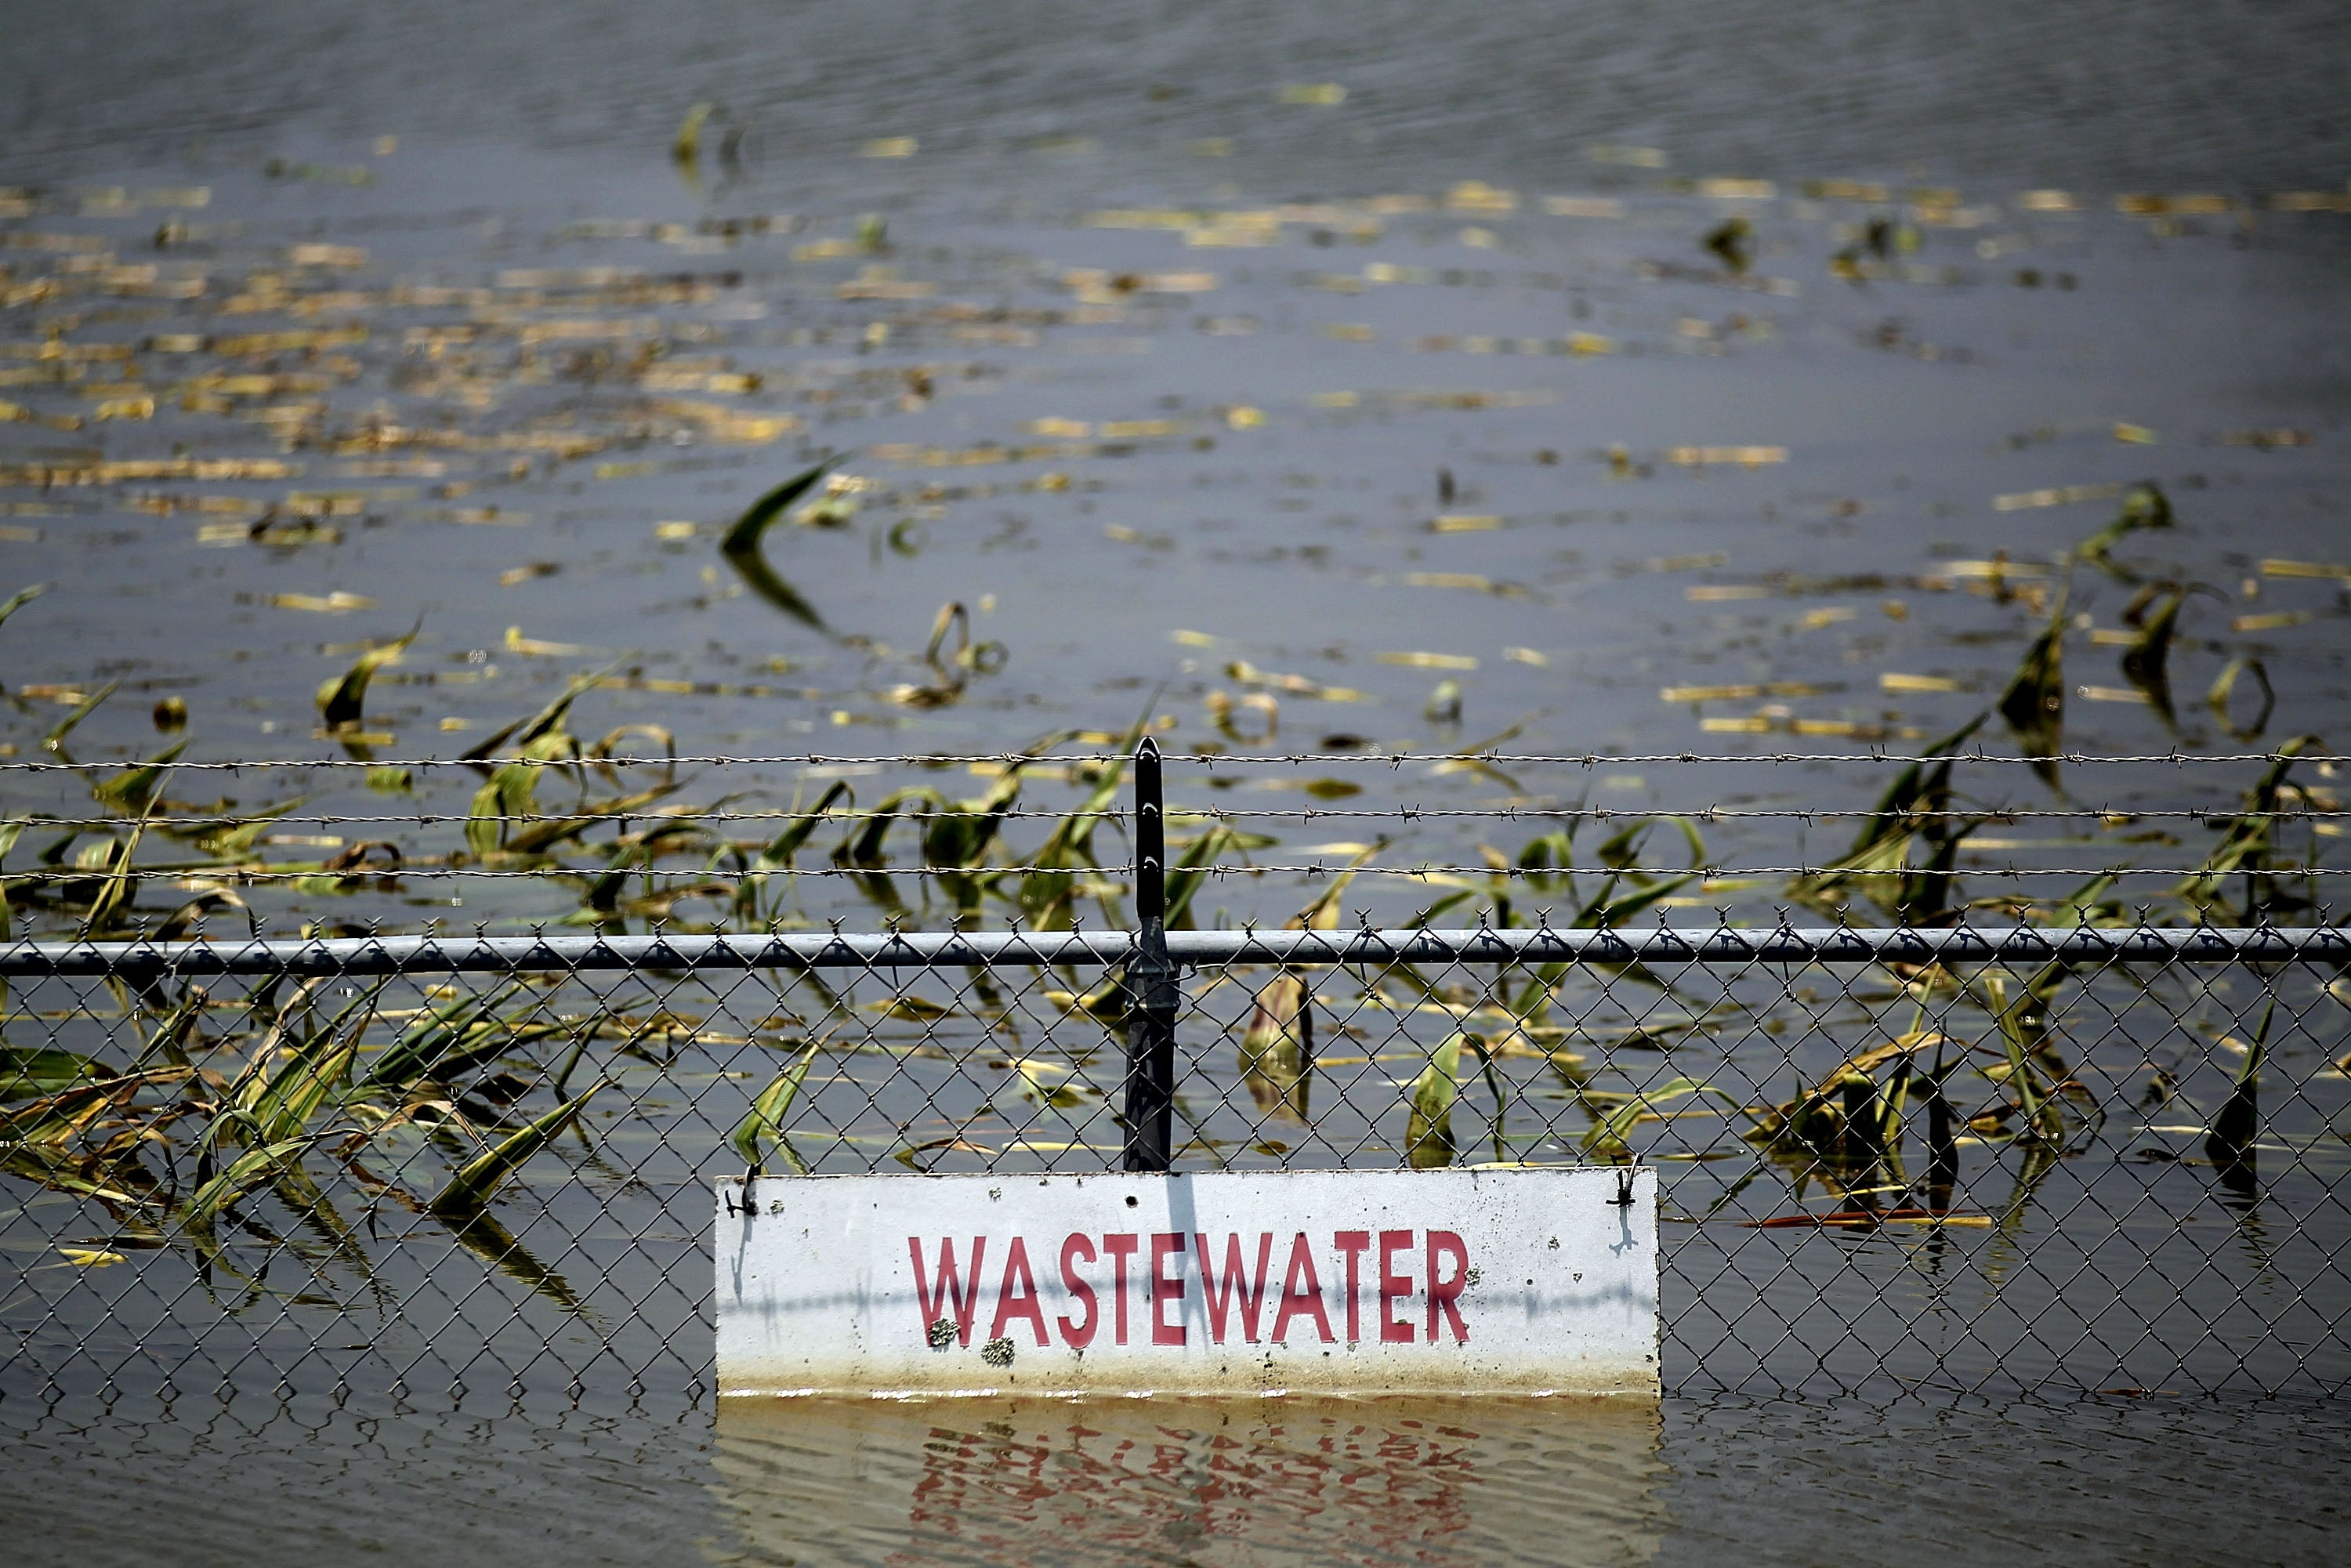 Sewage Floods Likely to Rise - Scientific American